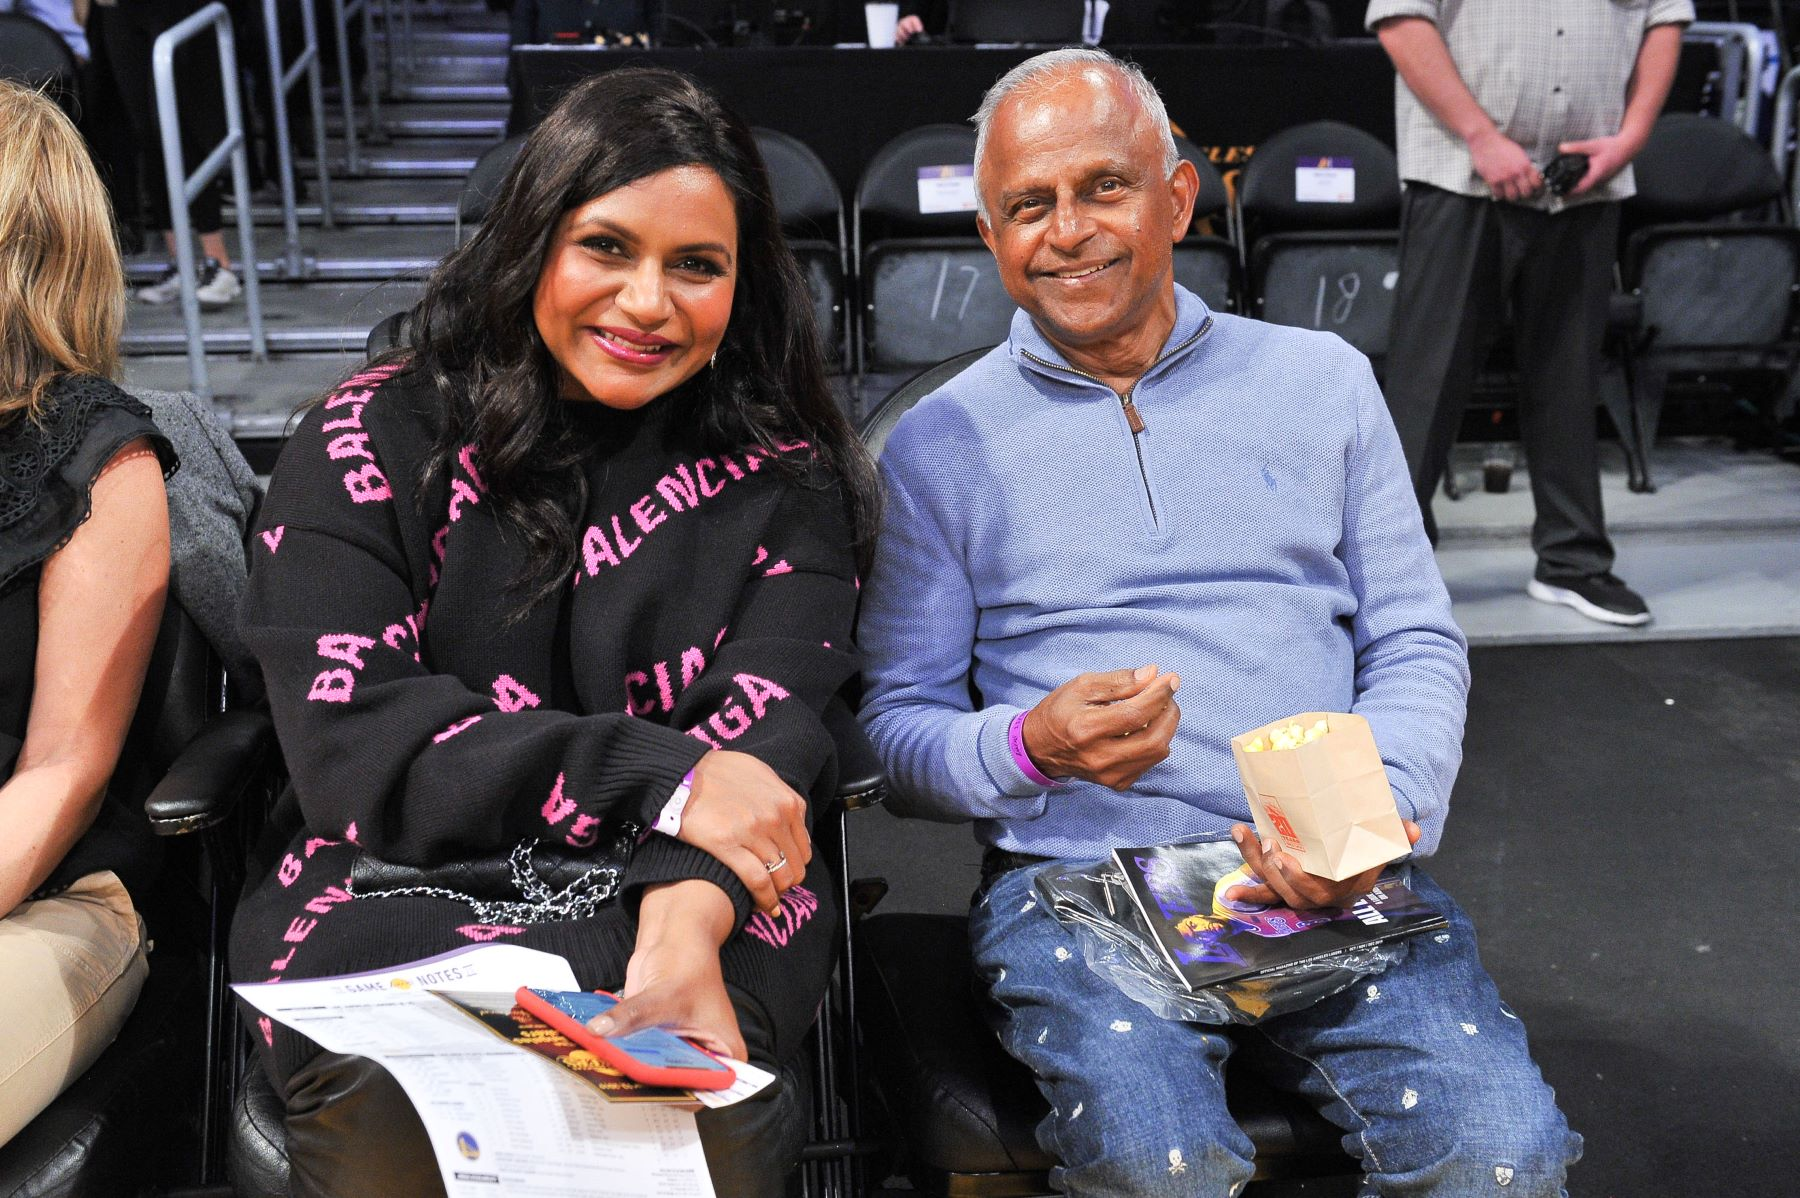 Mindy Kaling and her father